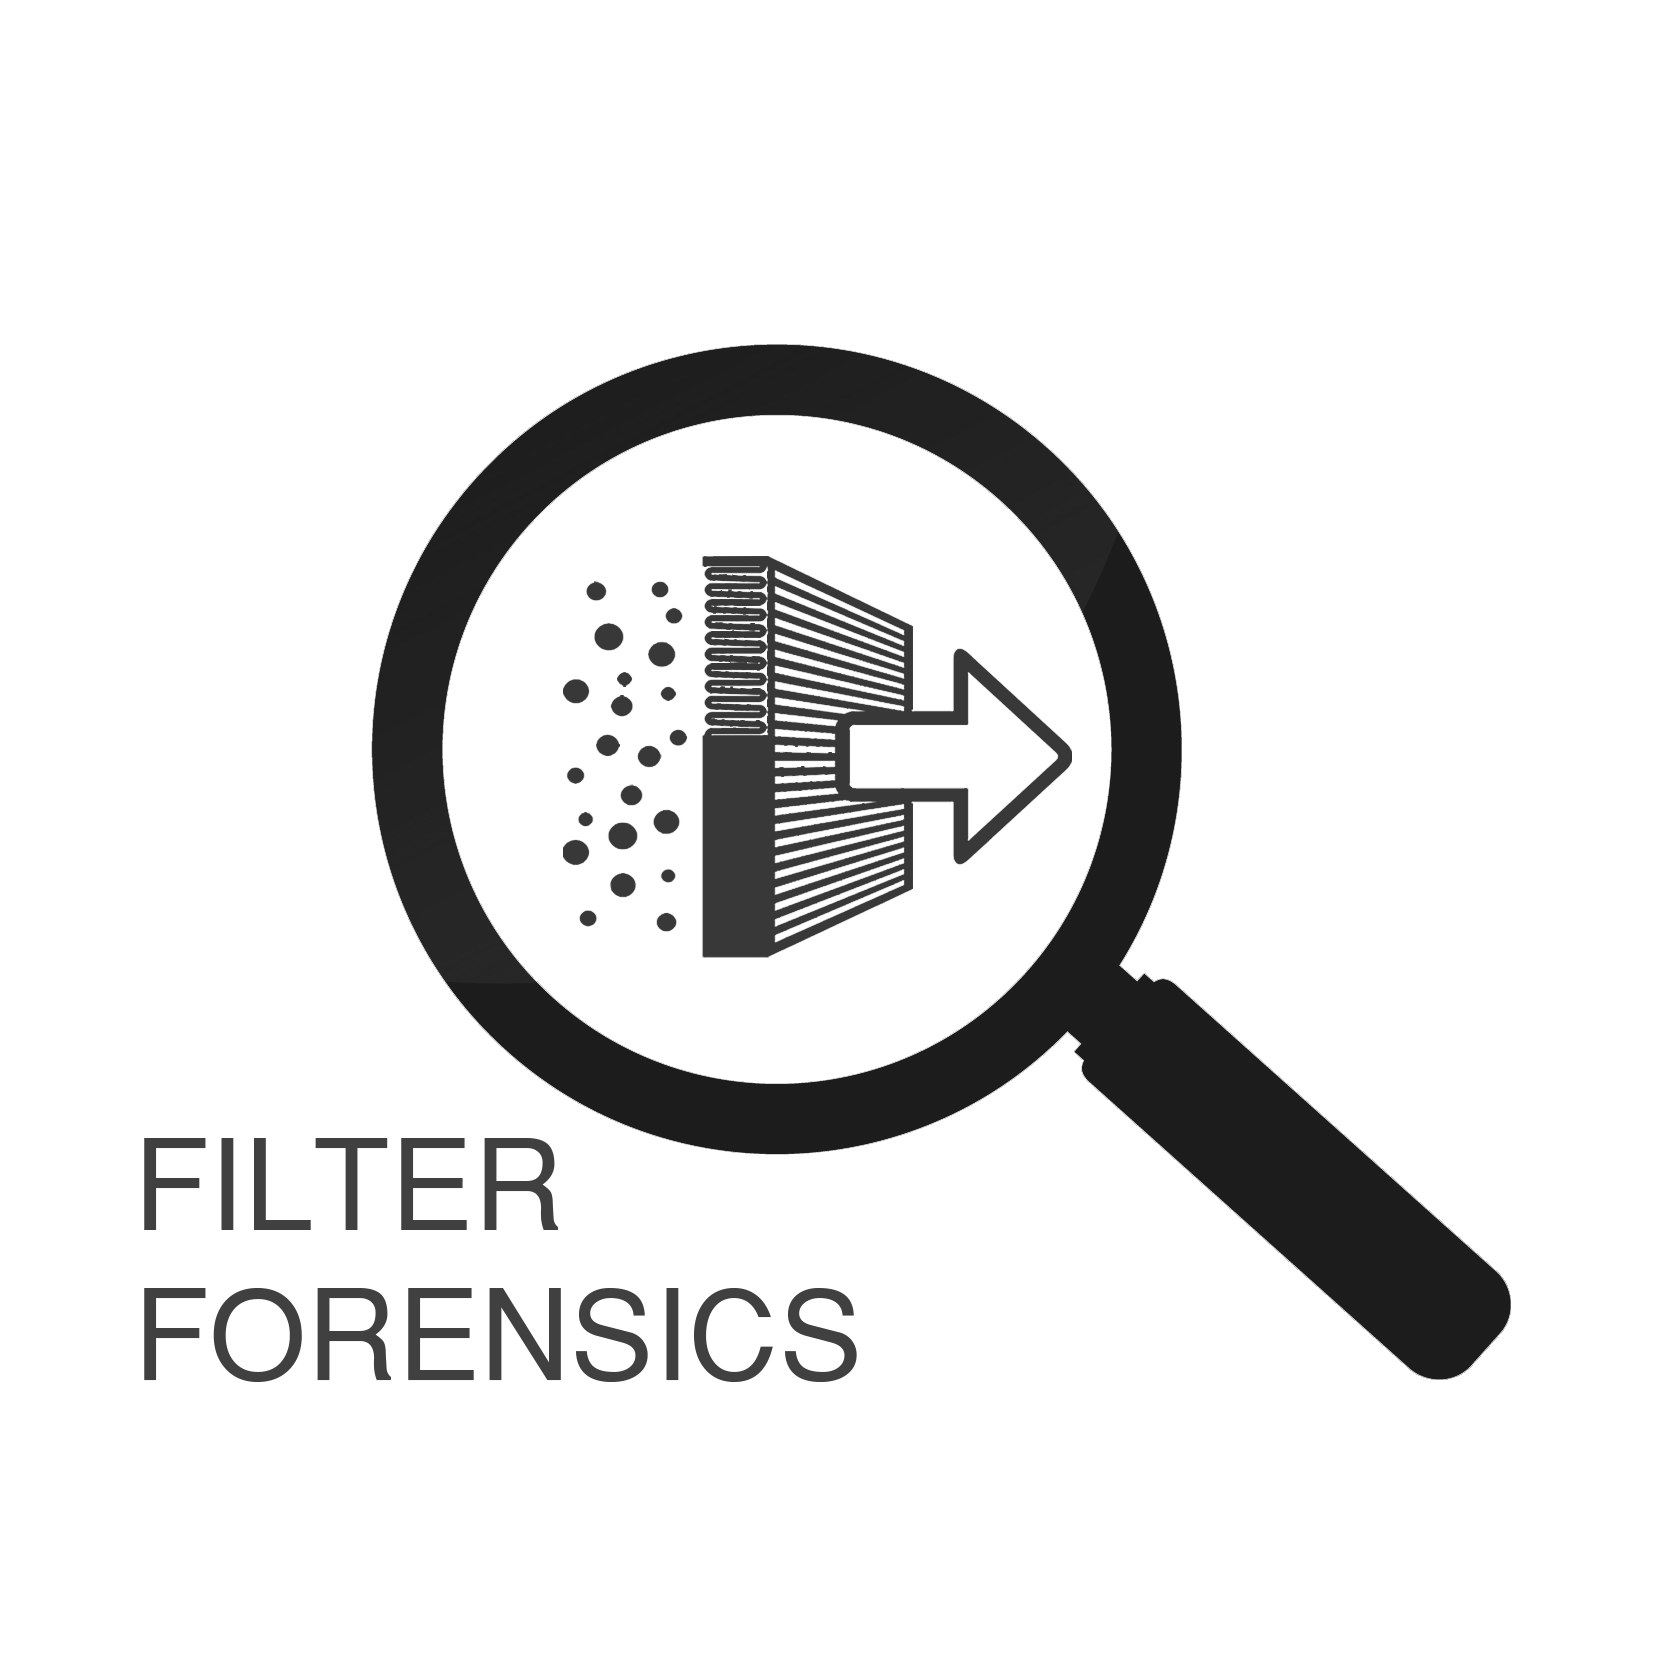 Filter_Forensics_New